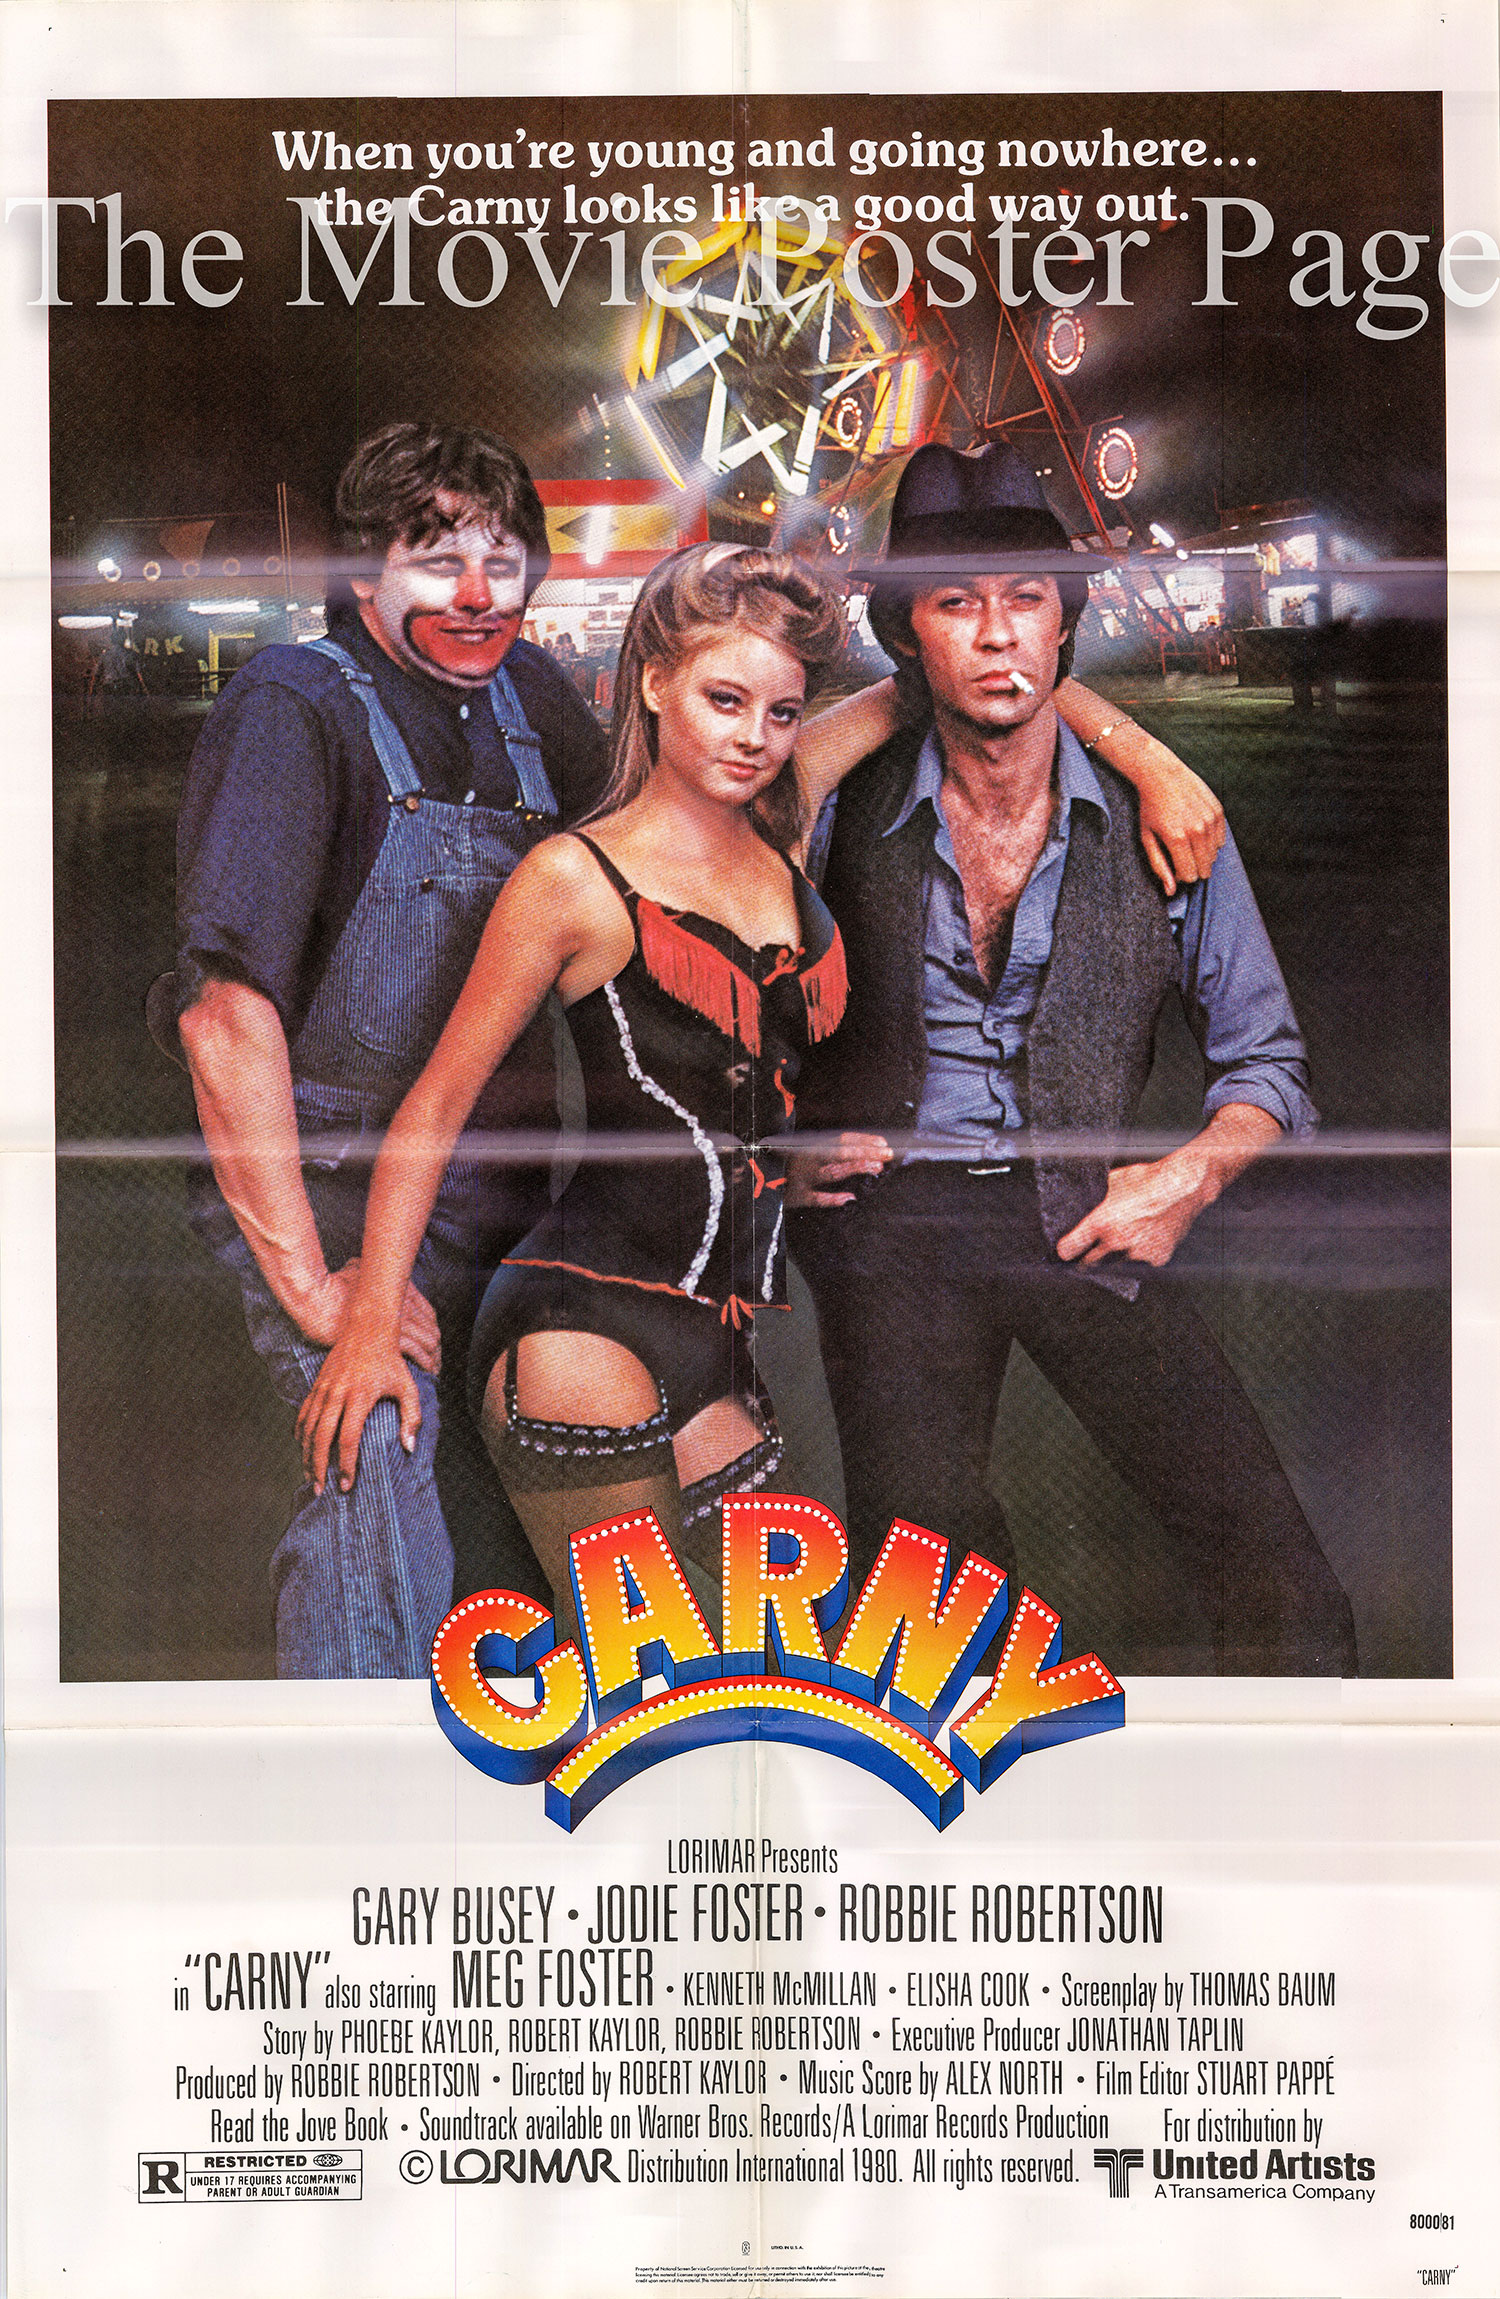 Pictured is a US one-sheet poster for the 1980 Robert Kaylor film Carny starring Gary Busey.